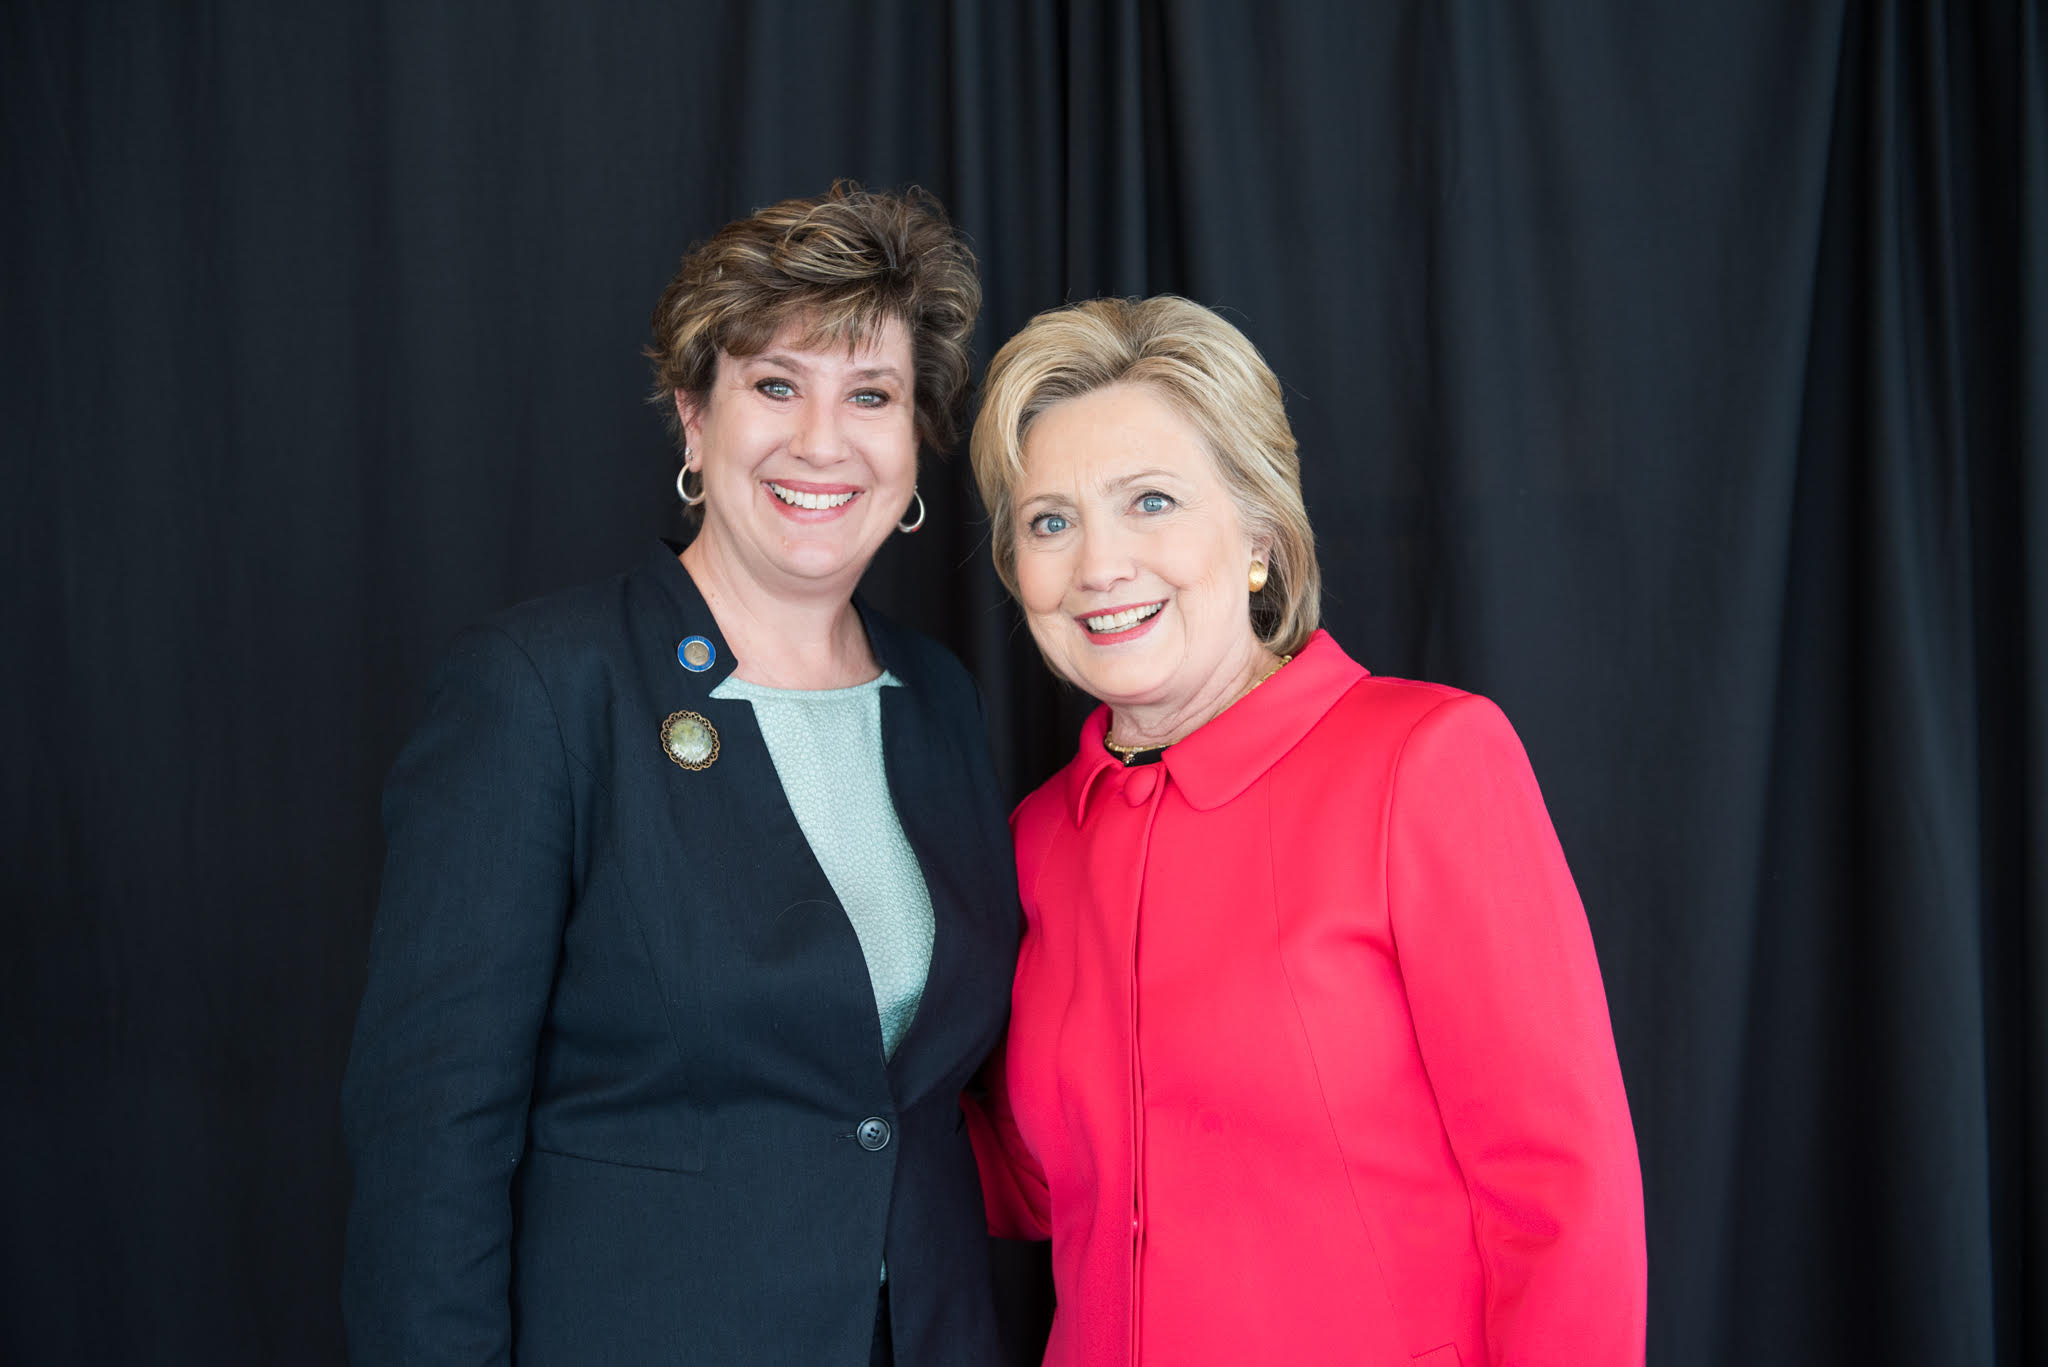 Jennifer Shilling and Hillary Clinton. Photo courtesy of Shilling for Senate.